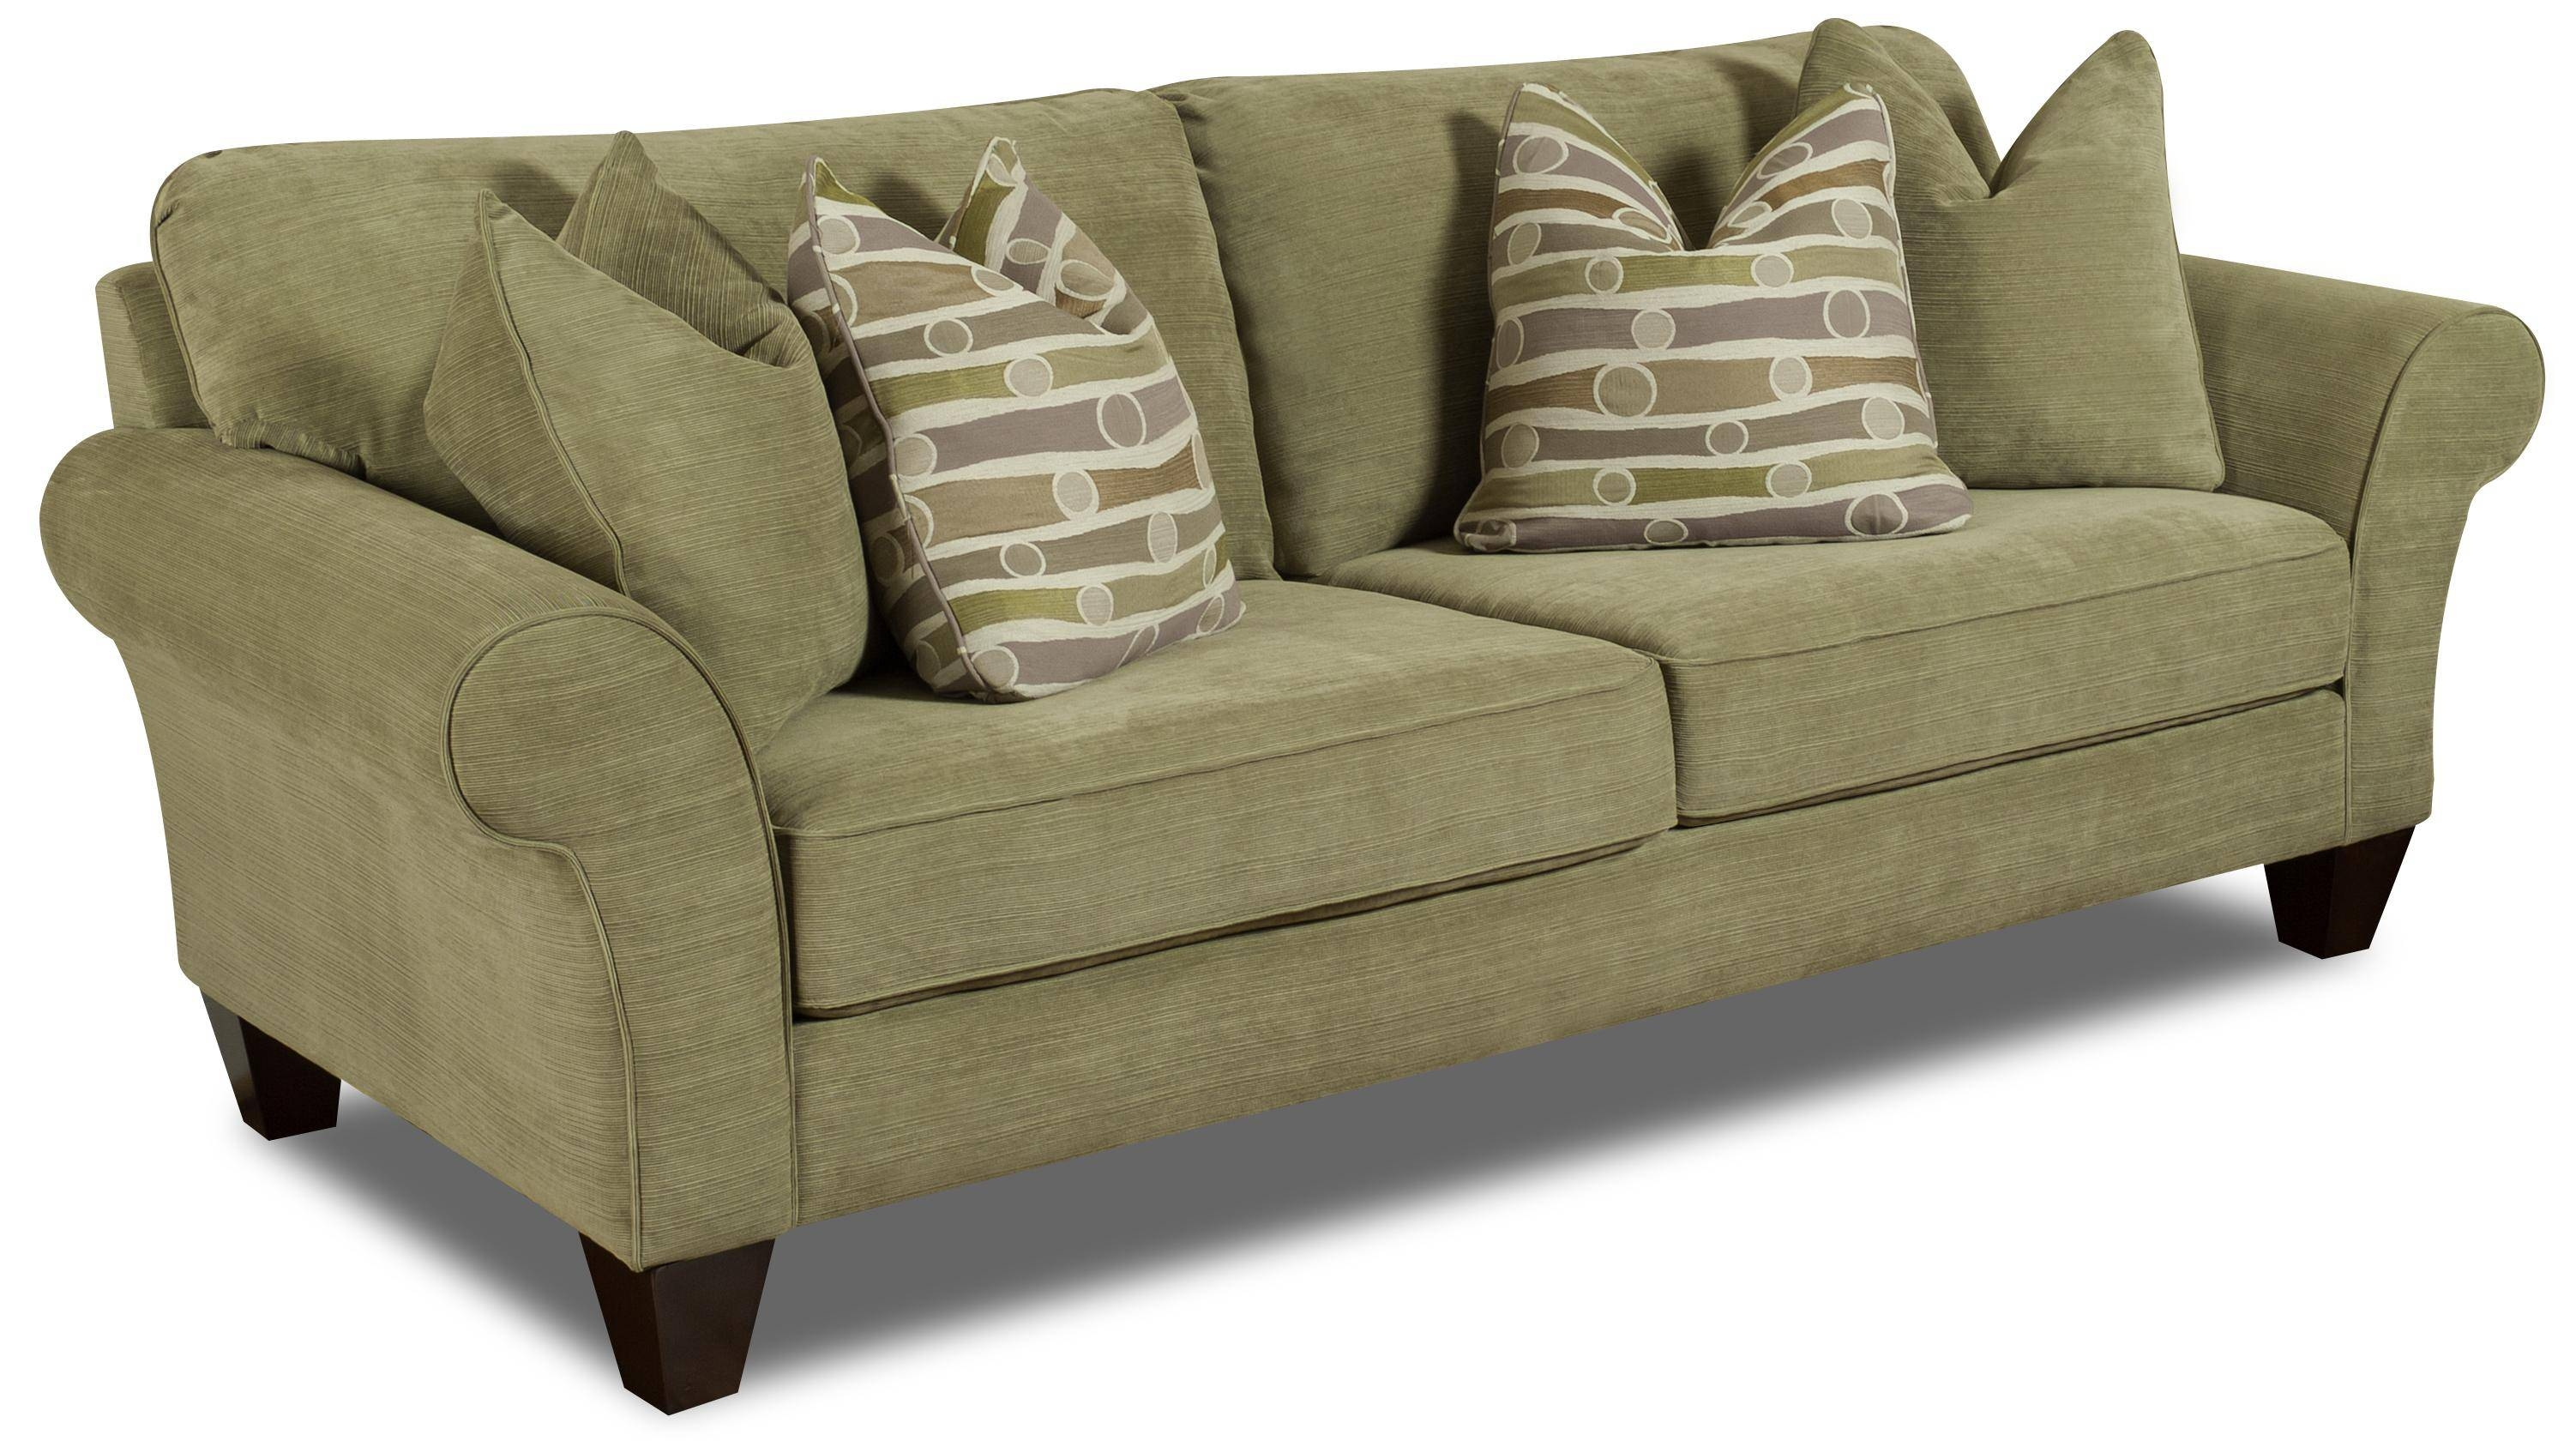 Bauhaus D02 Casual Rolled Arm Stationary Sofa With Thick Exposed inside Bauhaus Furniture Sectional Sofas (Image 3 of 15)